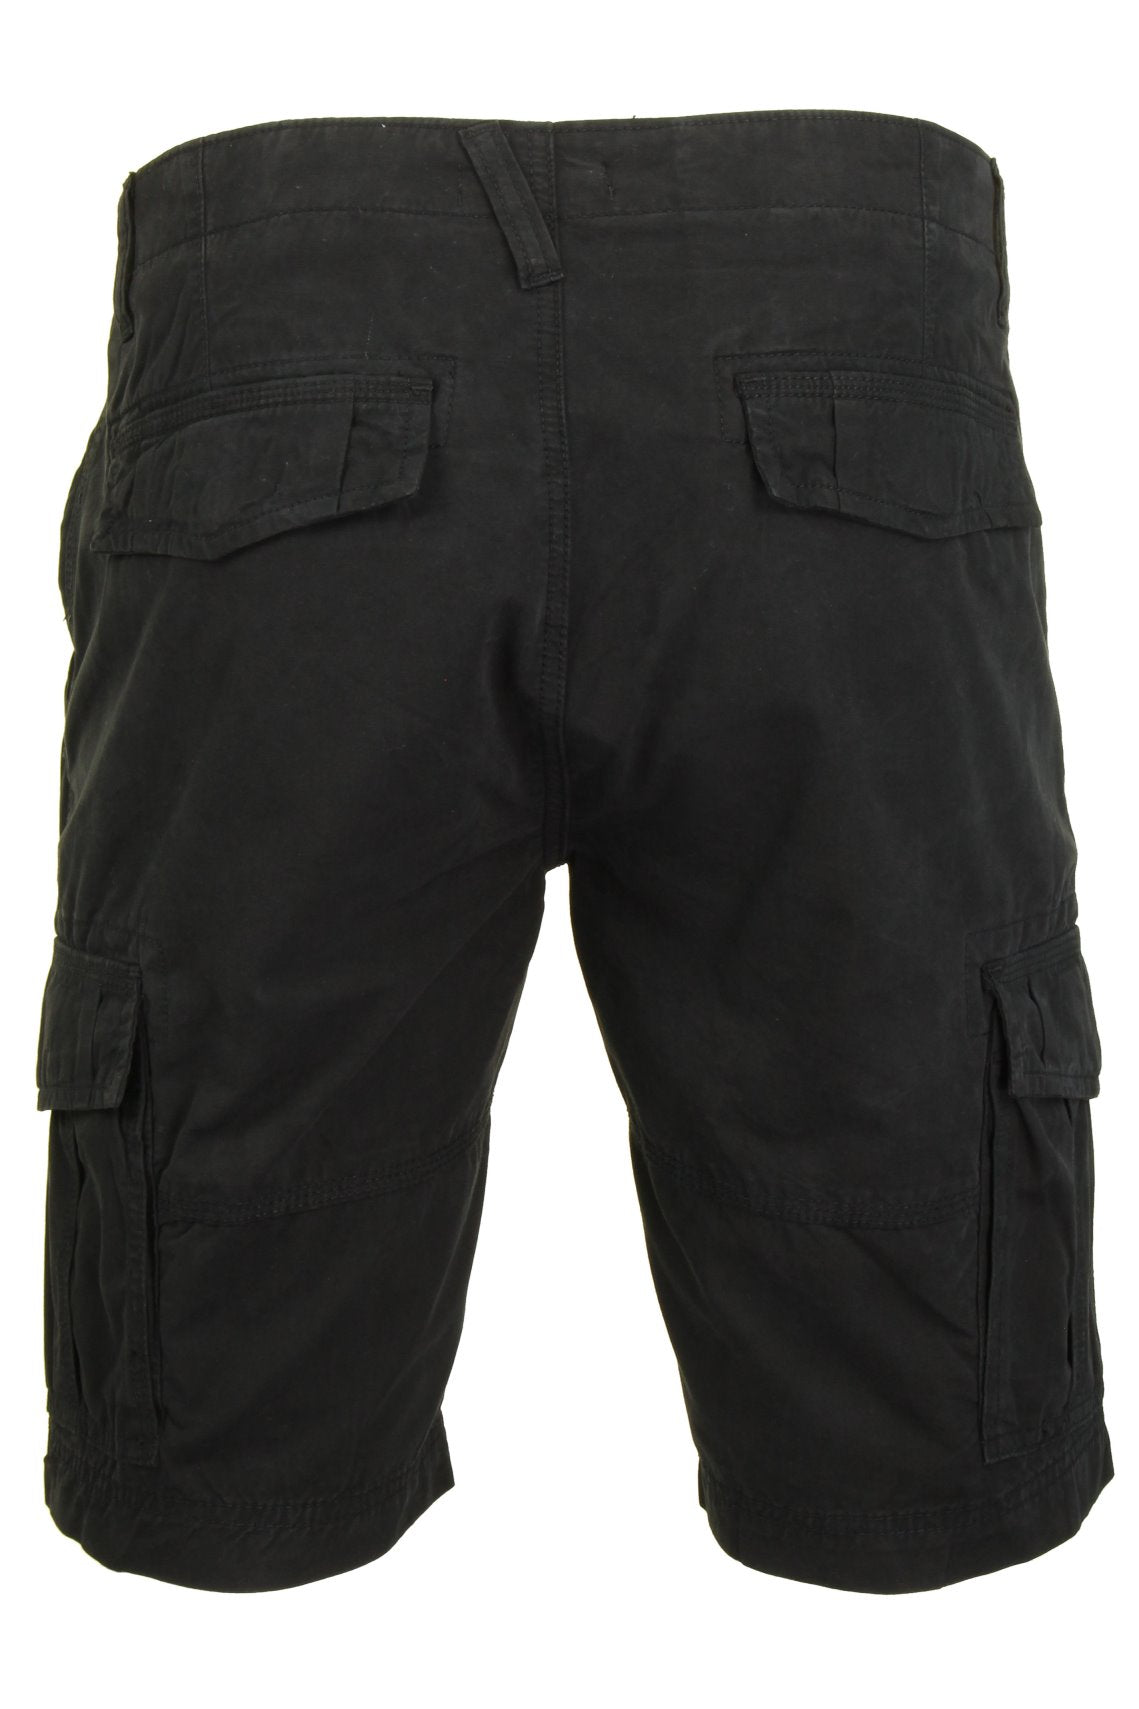 Mens Canvas Cargo Shorts by Xact-3